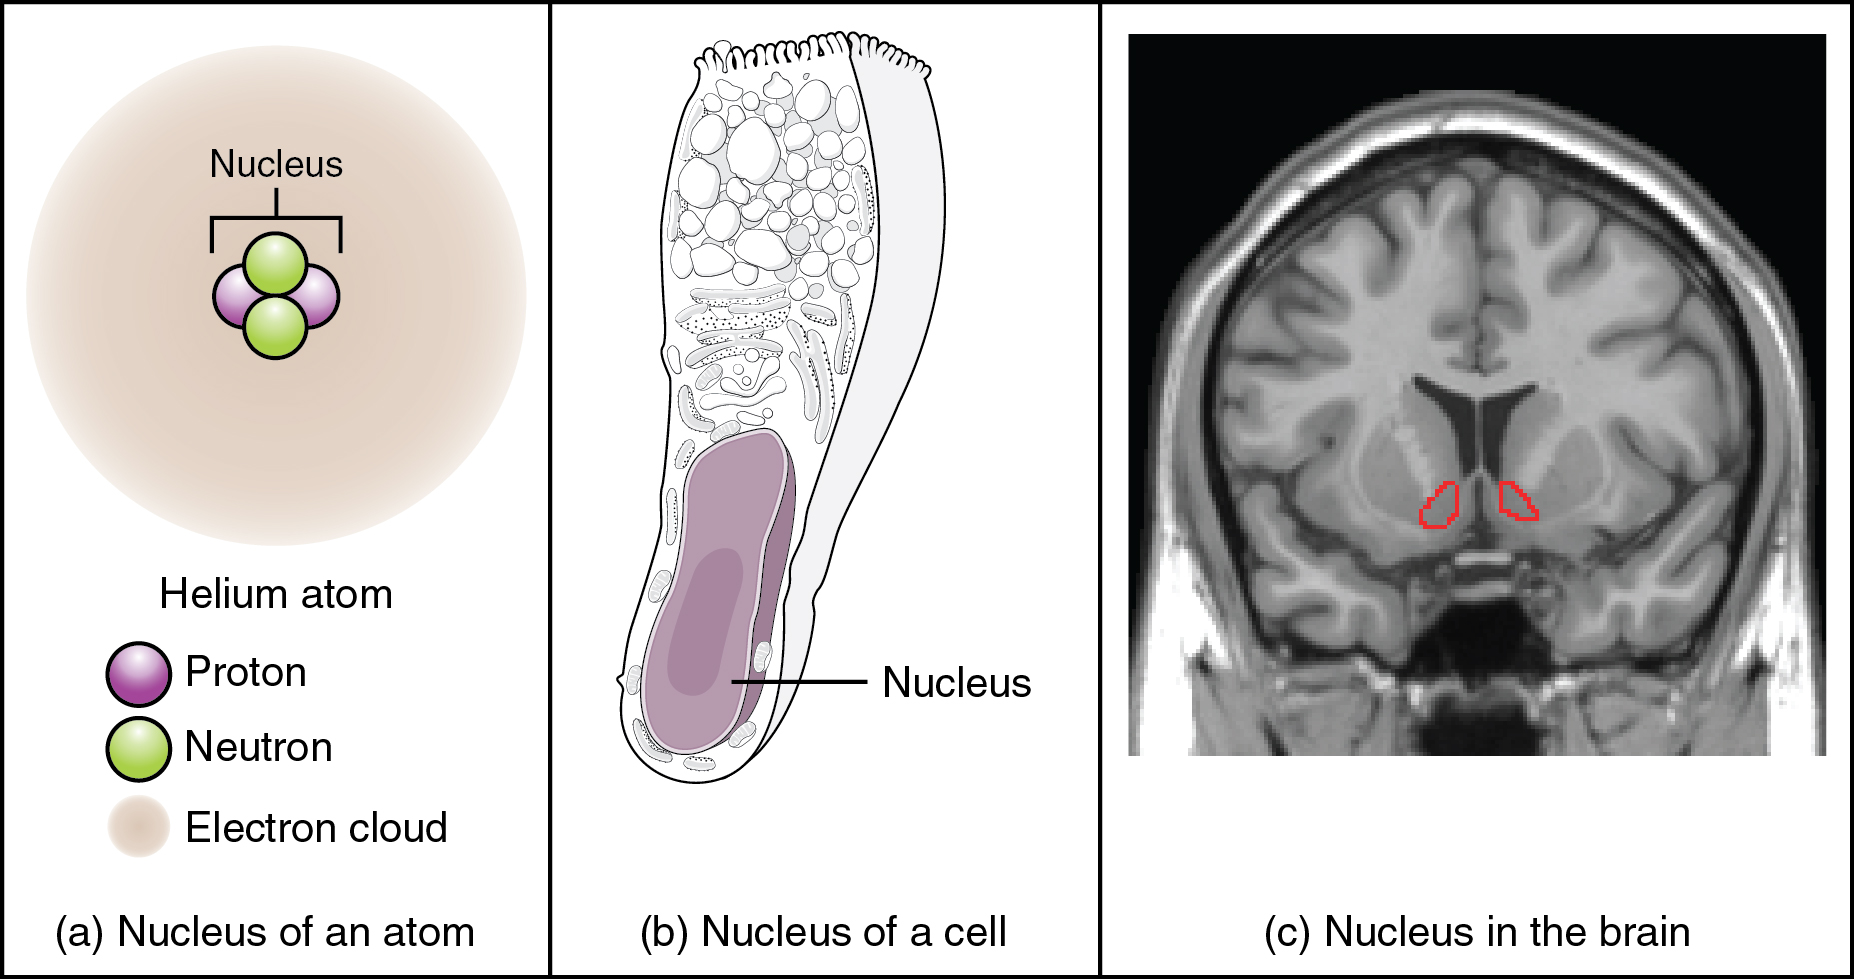 This figure shows two diagrams and a photo, labeled A, B, and C. Image A shows an atom composed of two neutrons and two protons surrounded by a hazy electron cloud. The nucleus of the atom is where the protons and neutrons are located. Image B shows a trumpet shaped cell with a large, oval nucleus near its narrow end. This is the nucleus of a cell. Image C shows an MRI capture of the brain. Two red areas near the center of the brain are highlighted in red. These are the nuclei within the brain.